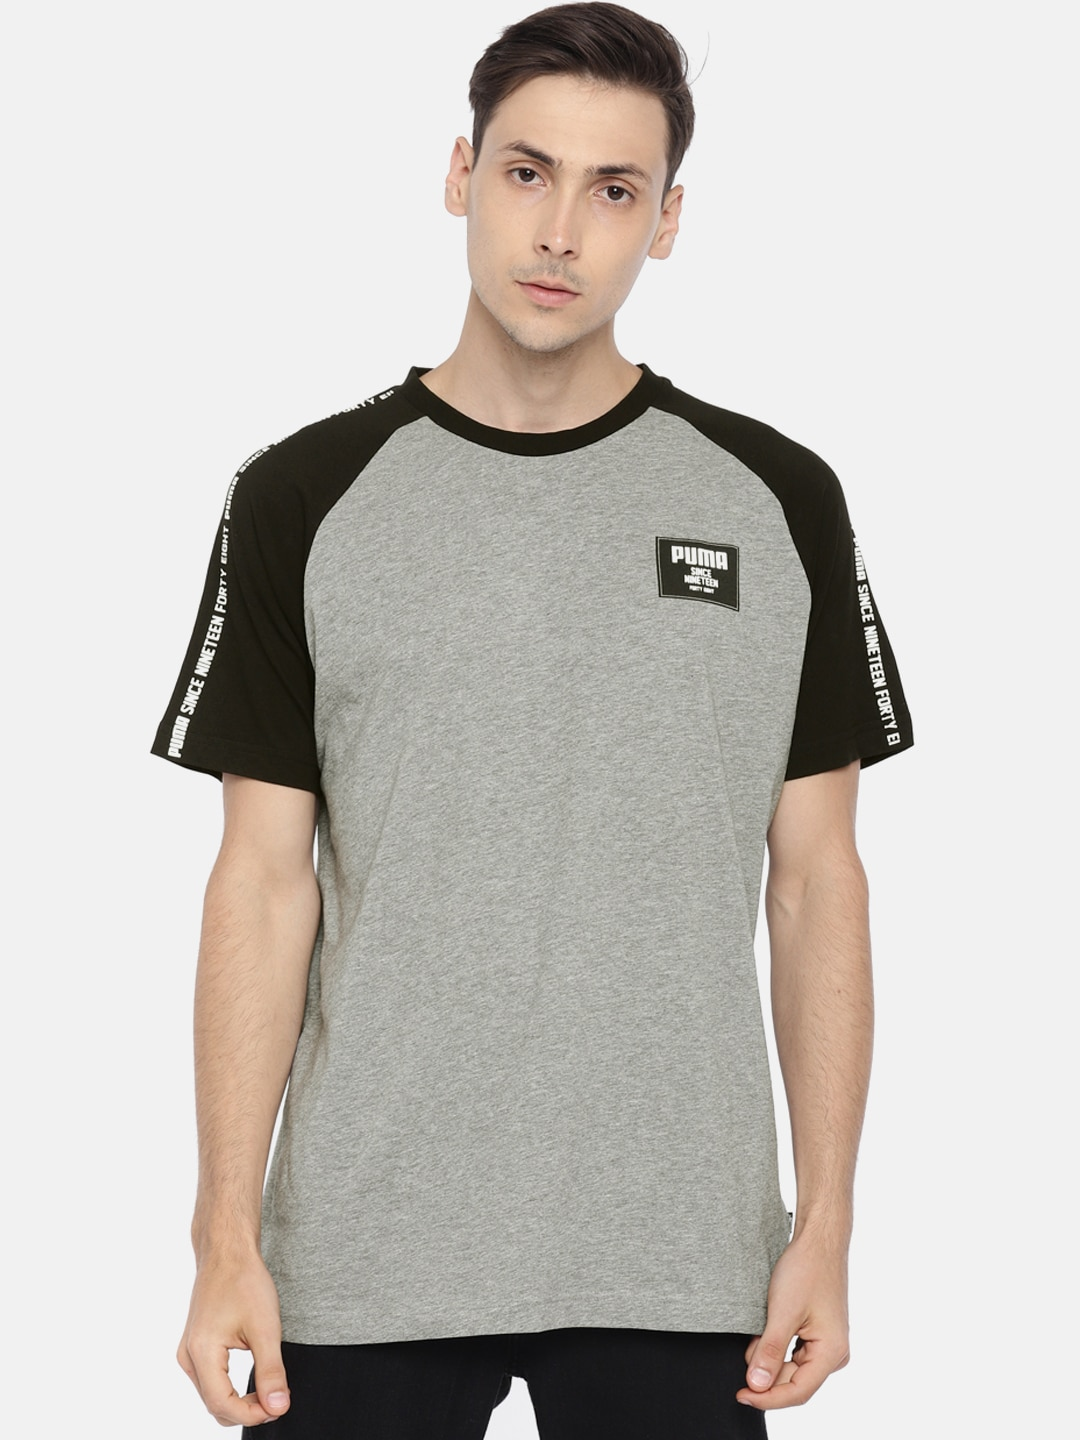 be0cfb5691f2 Puma T shirts - Buy Puma T Shirts For Men   Women Online in India